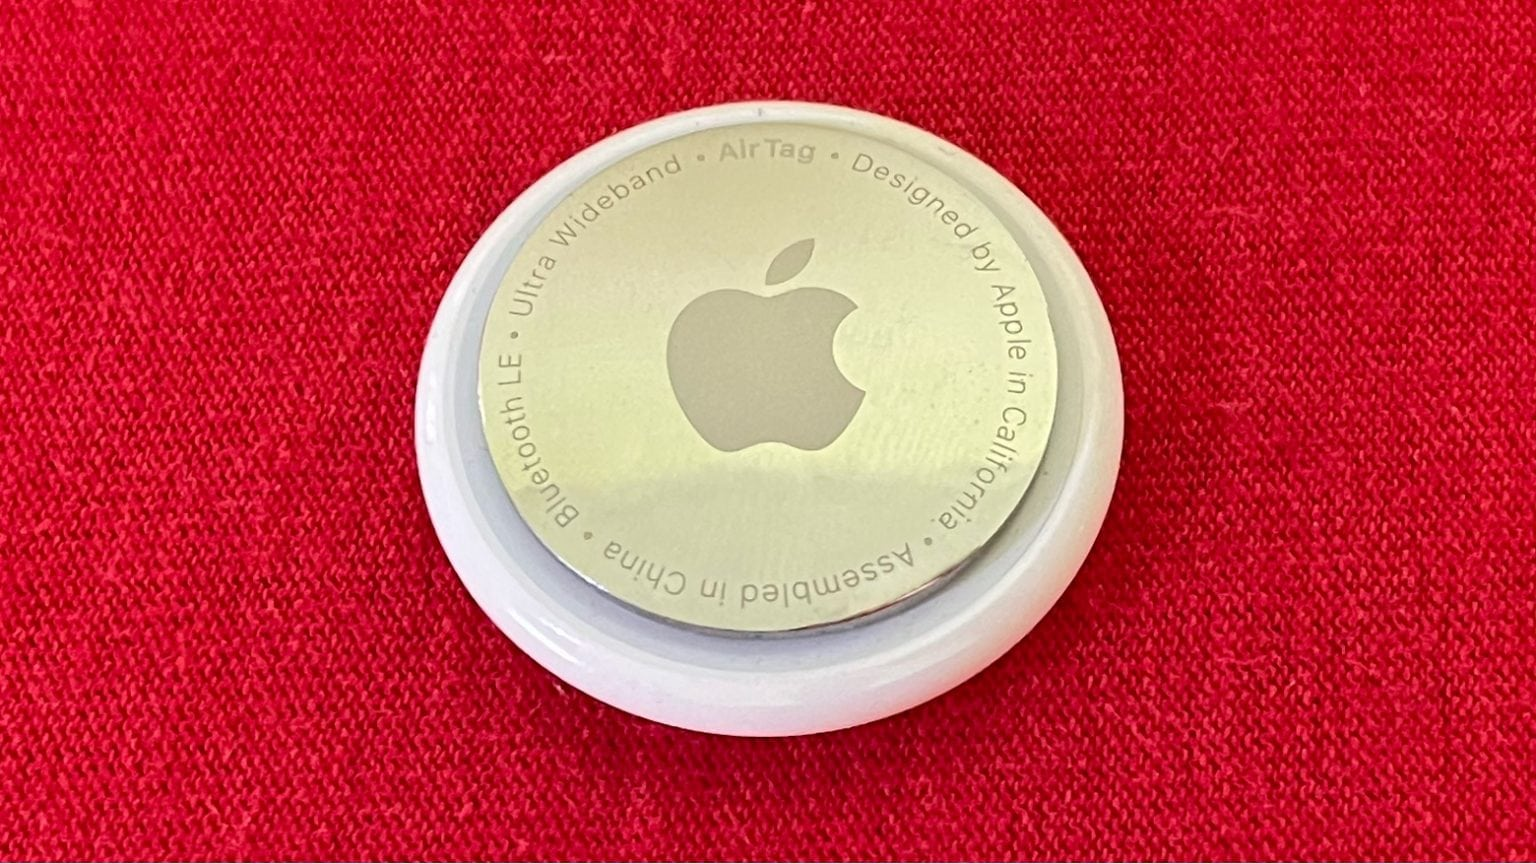 Apple AirTag review. So small, so meh. And where's the $%&# hole, Tim?